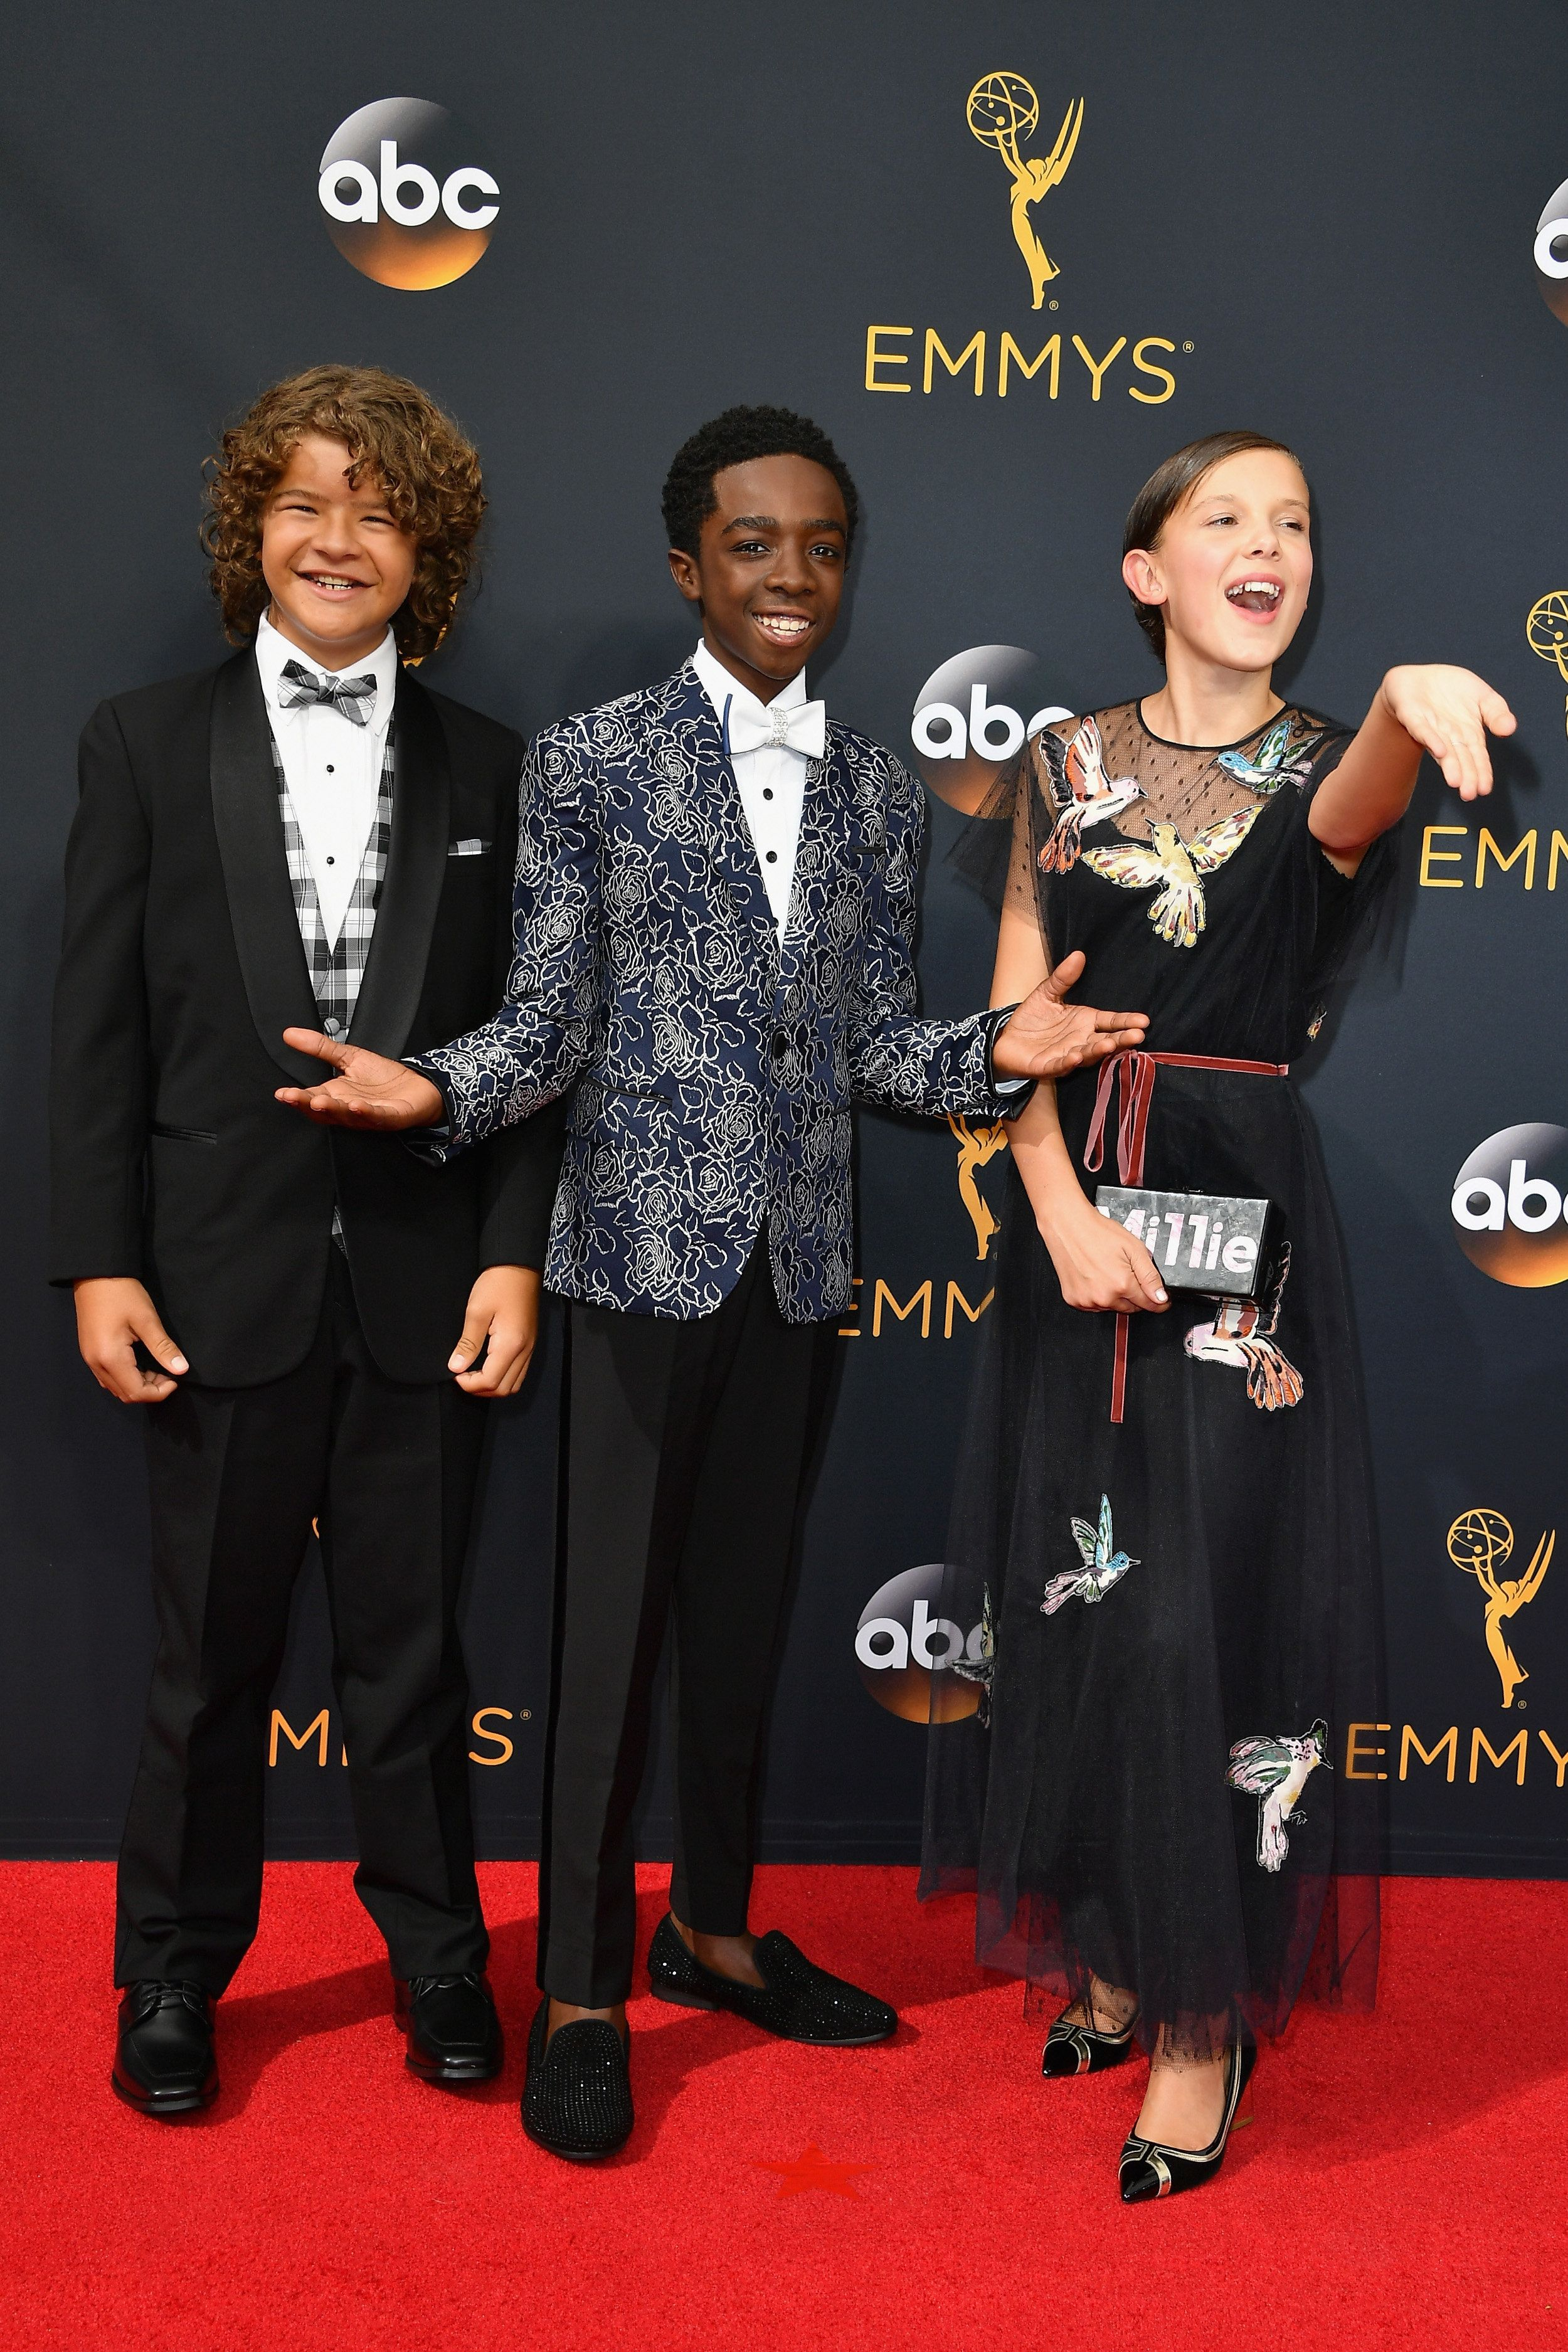 Gaten Matarazzo, Caleb McLaughlin and Millie Bobby Brown (left to right) attend the 68th Annual Primetime Emmy Awards in Los